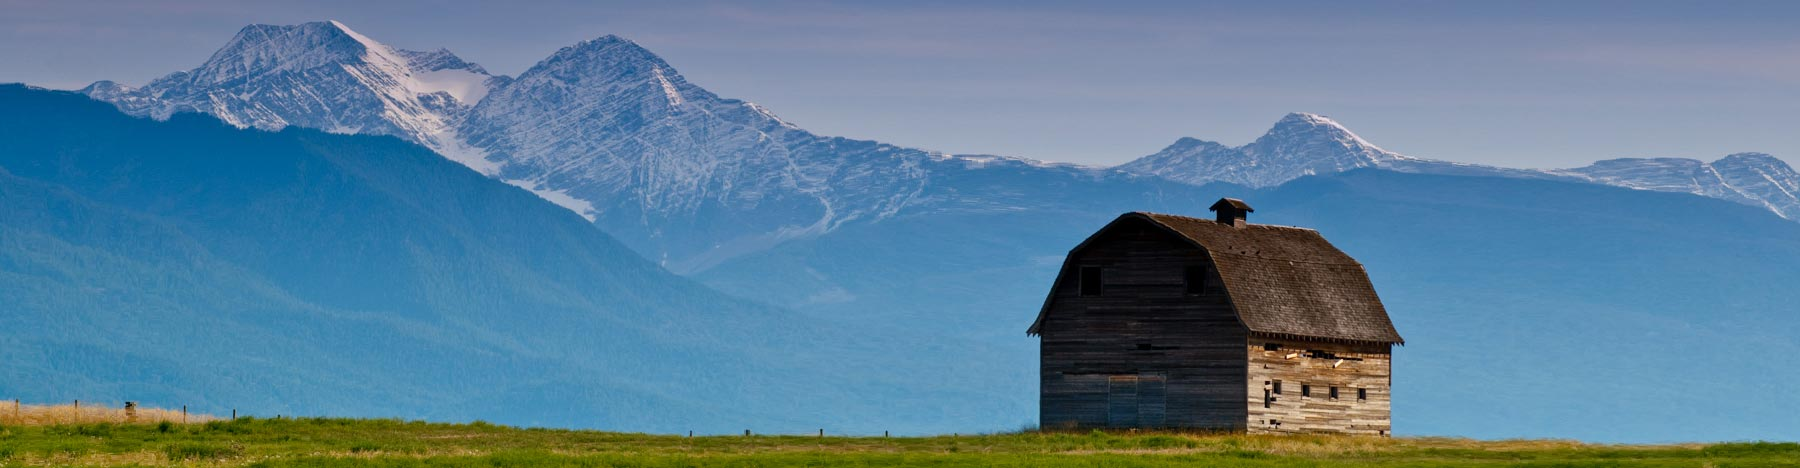 Mission Mountains, Flathead Indian Reservation, Montana